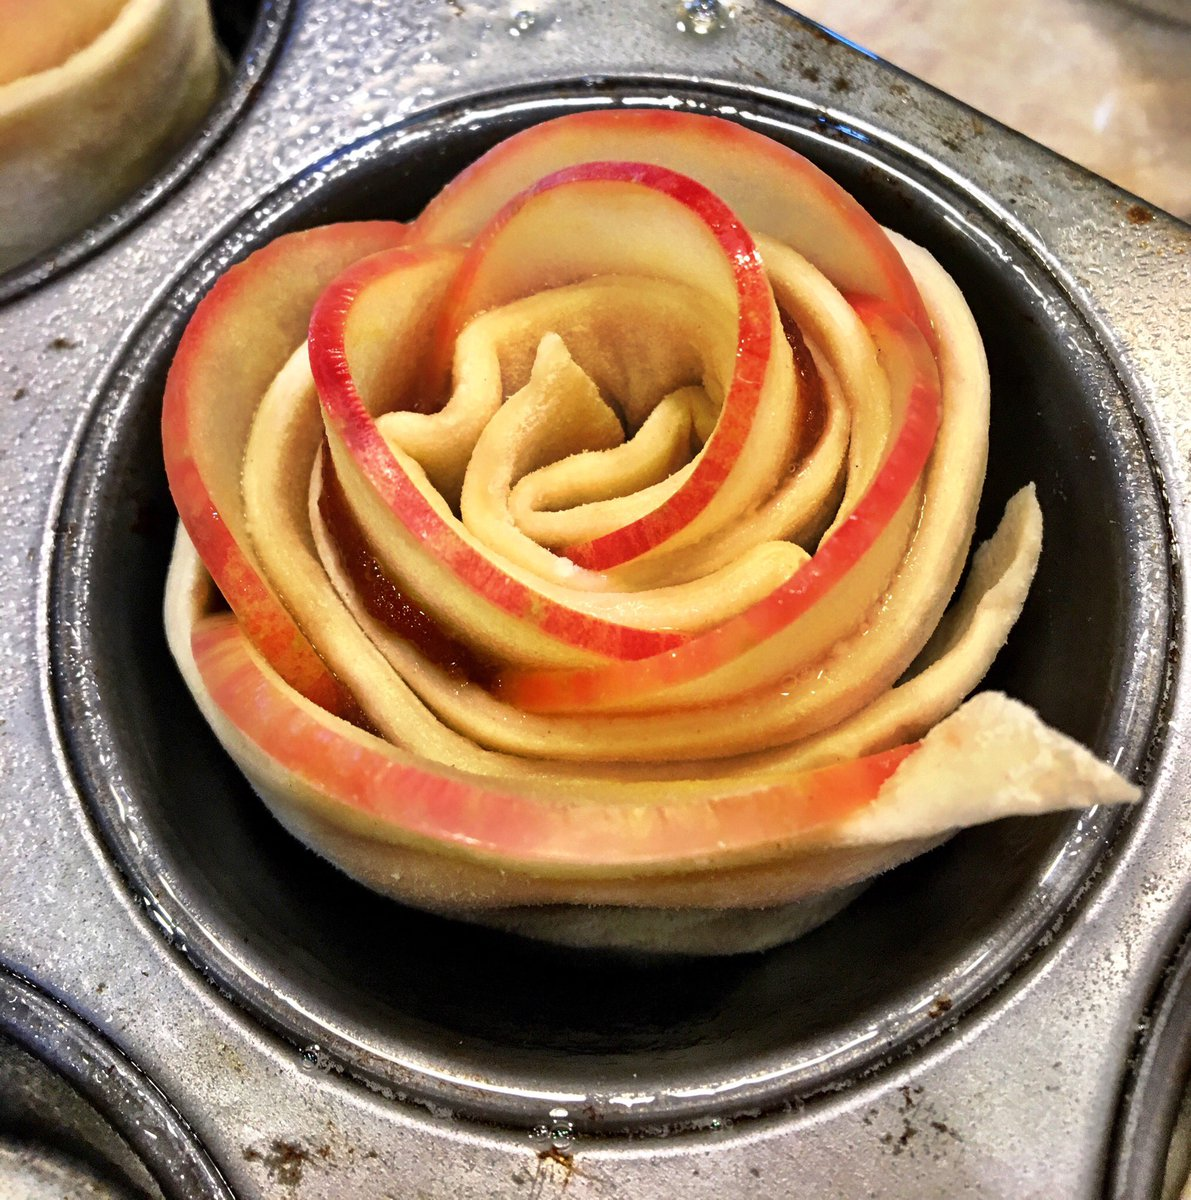 Apple Rose ready for the oven. Tucked inside—Cinnamon Red Hot Apple Butter. Yum! Fun to try new things! Happy Thanksgiving!! #gardenchat #Foodiechats<br>http://pic.twitter.com/iFJJN50F0G